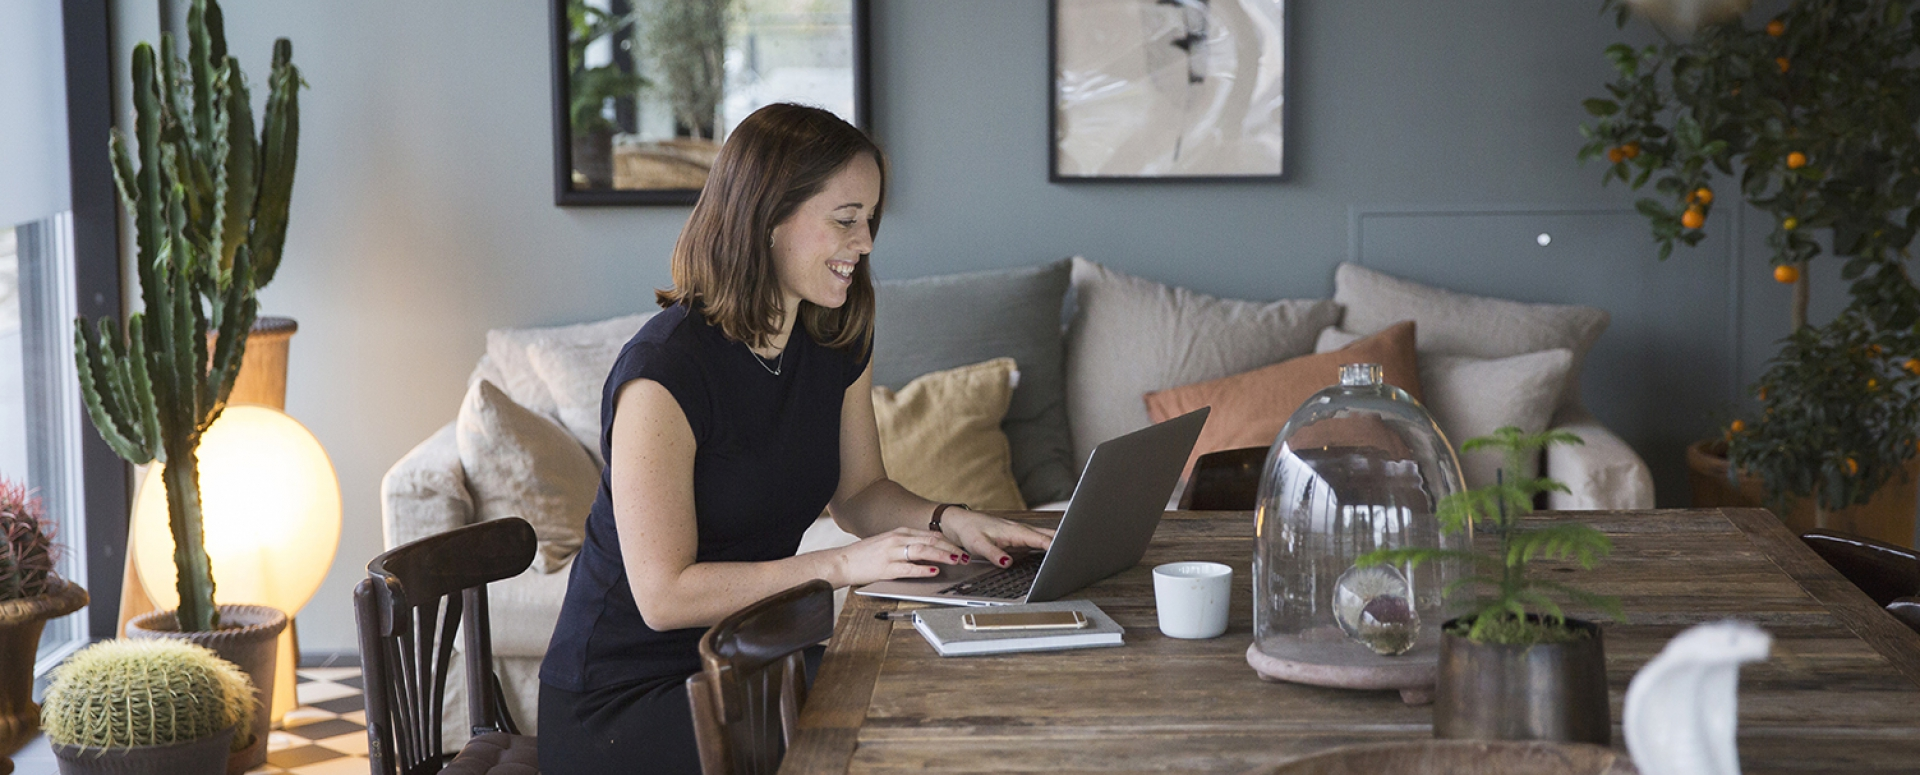 woman_works_home_laptop_ey_recommends